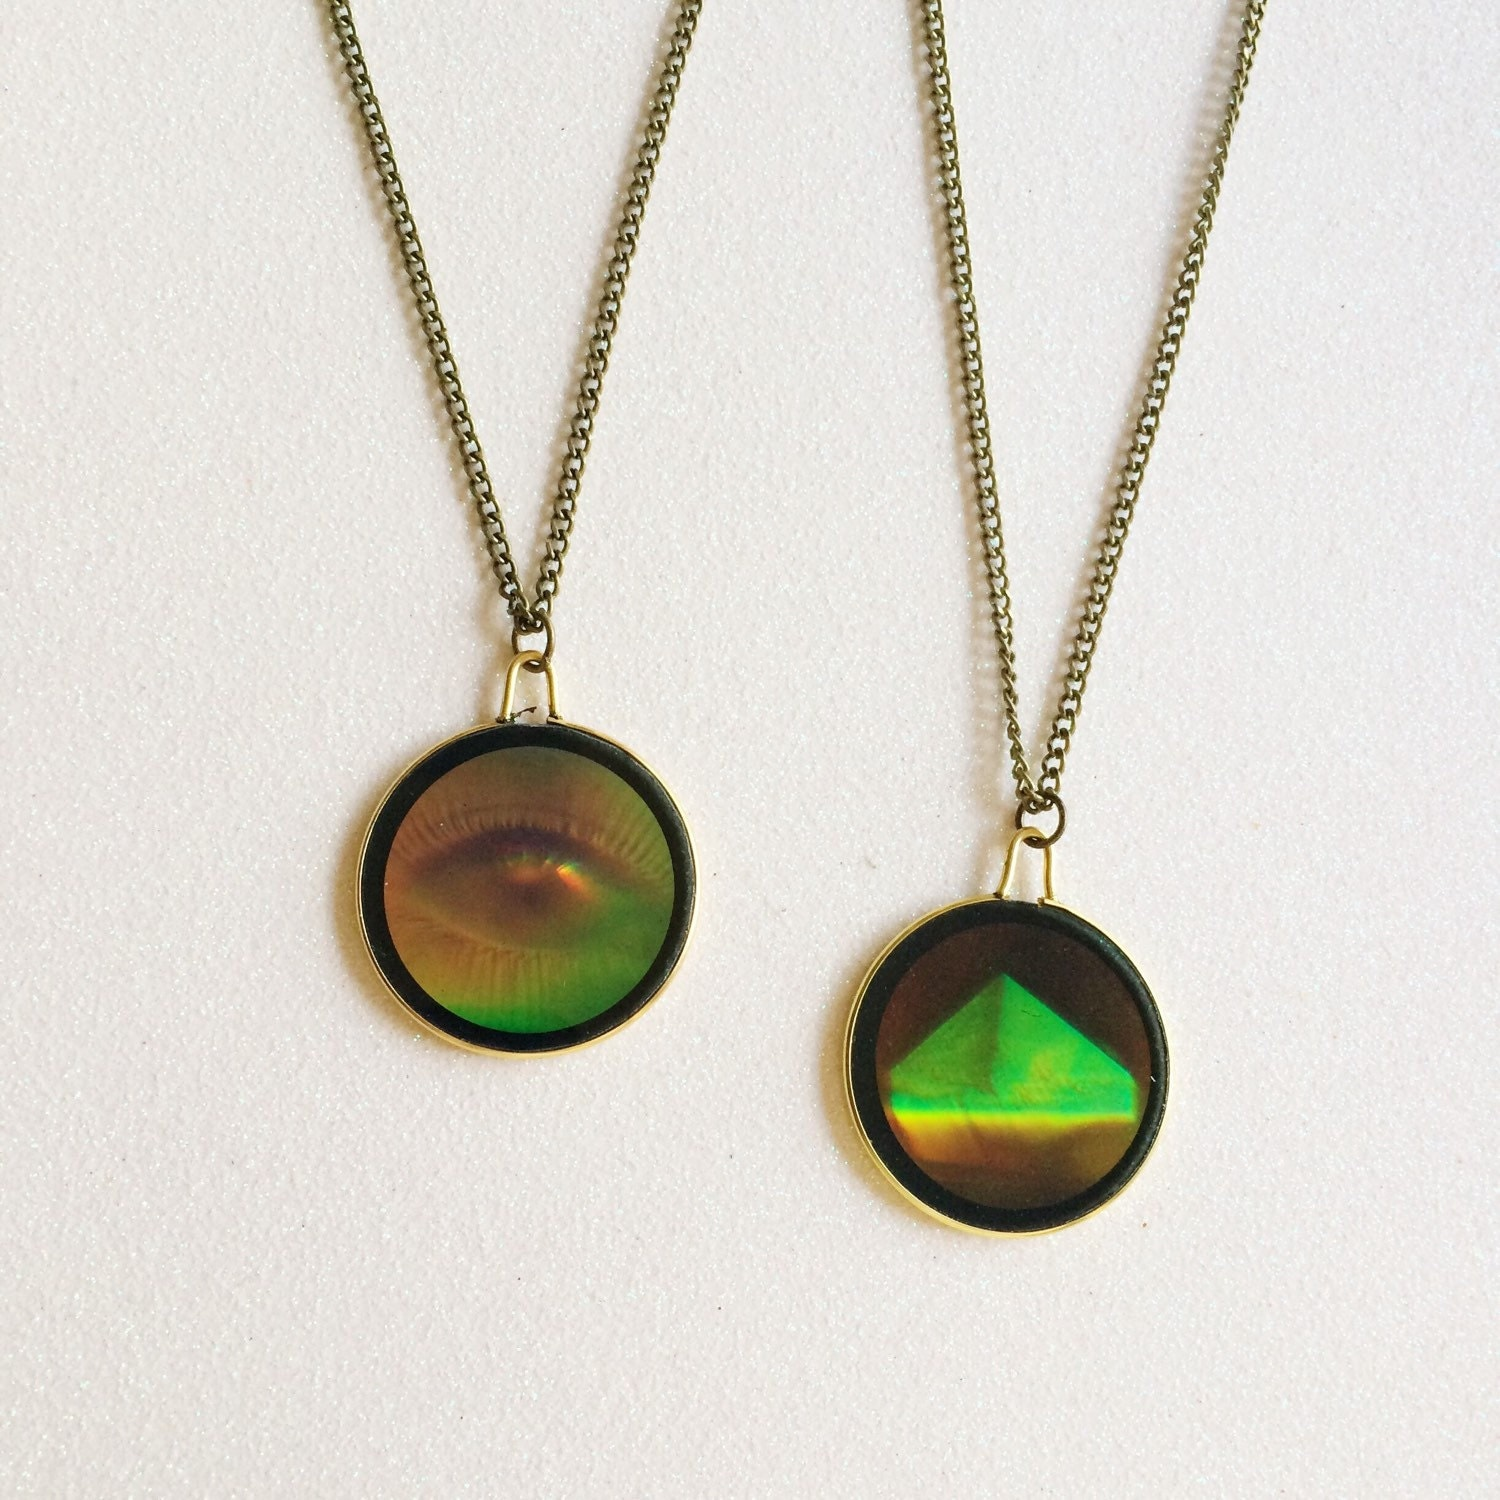 hologram necklaces